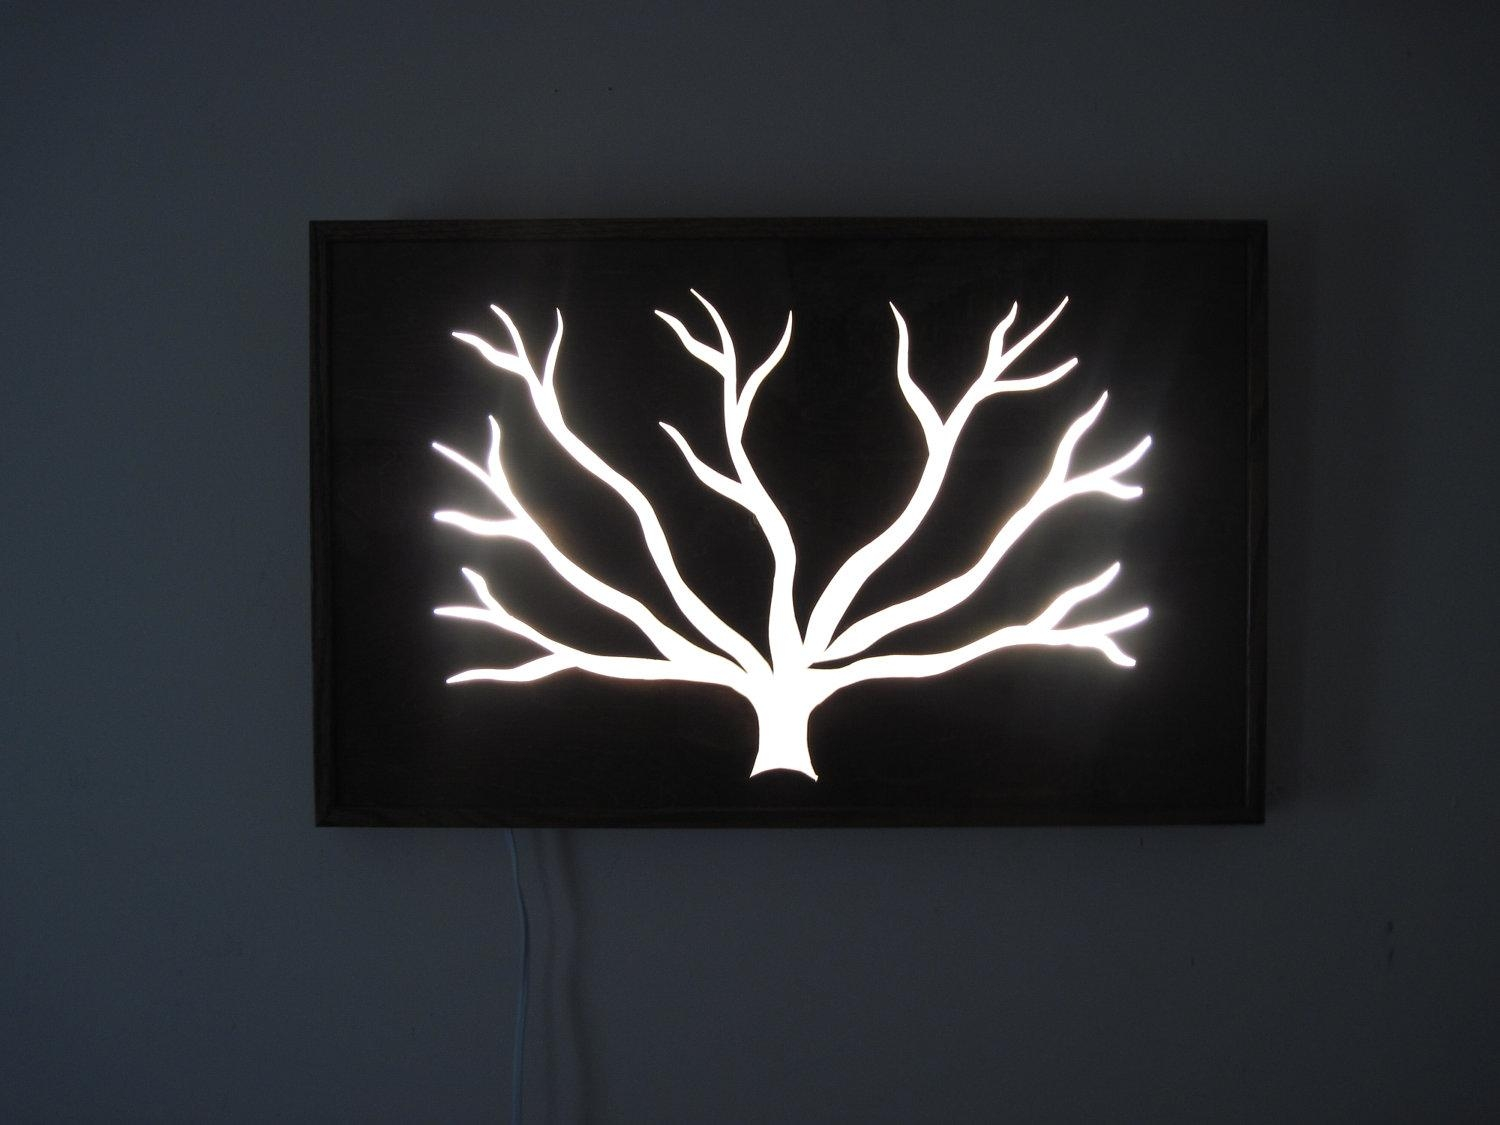 10 Reasons You Should Buy The Lates Wall Art Light Fixtures For Wall Art Lighting (View 2 of 20)